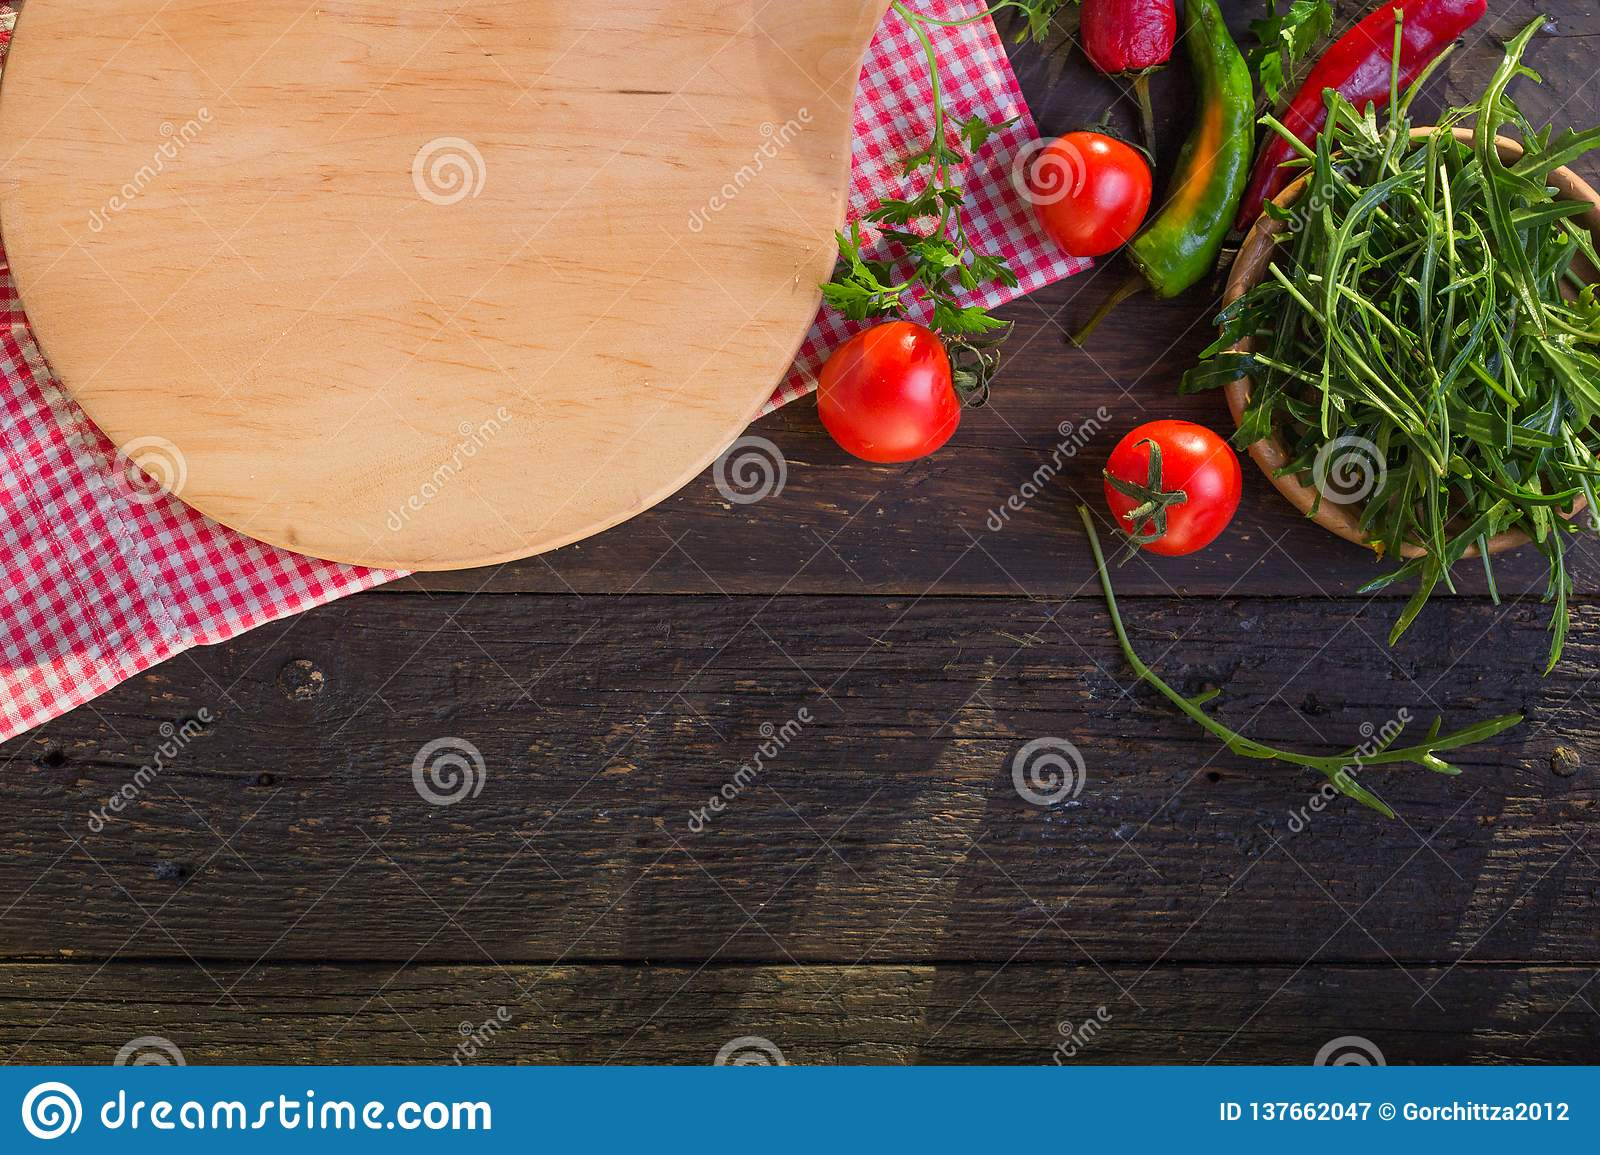 Round Wooden Tray Or Cutting Board On Black Table Top View Of Empty Kitchen Trendy Rustic Wooden Tray Saw Cut Imitation On Black Stock Image Image Of Board Black 137662047